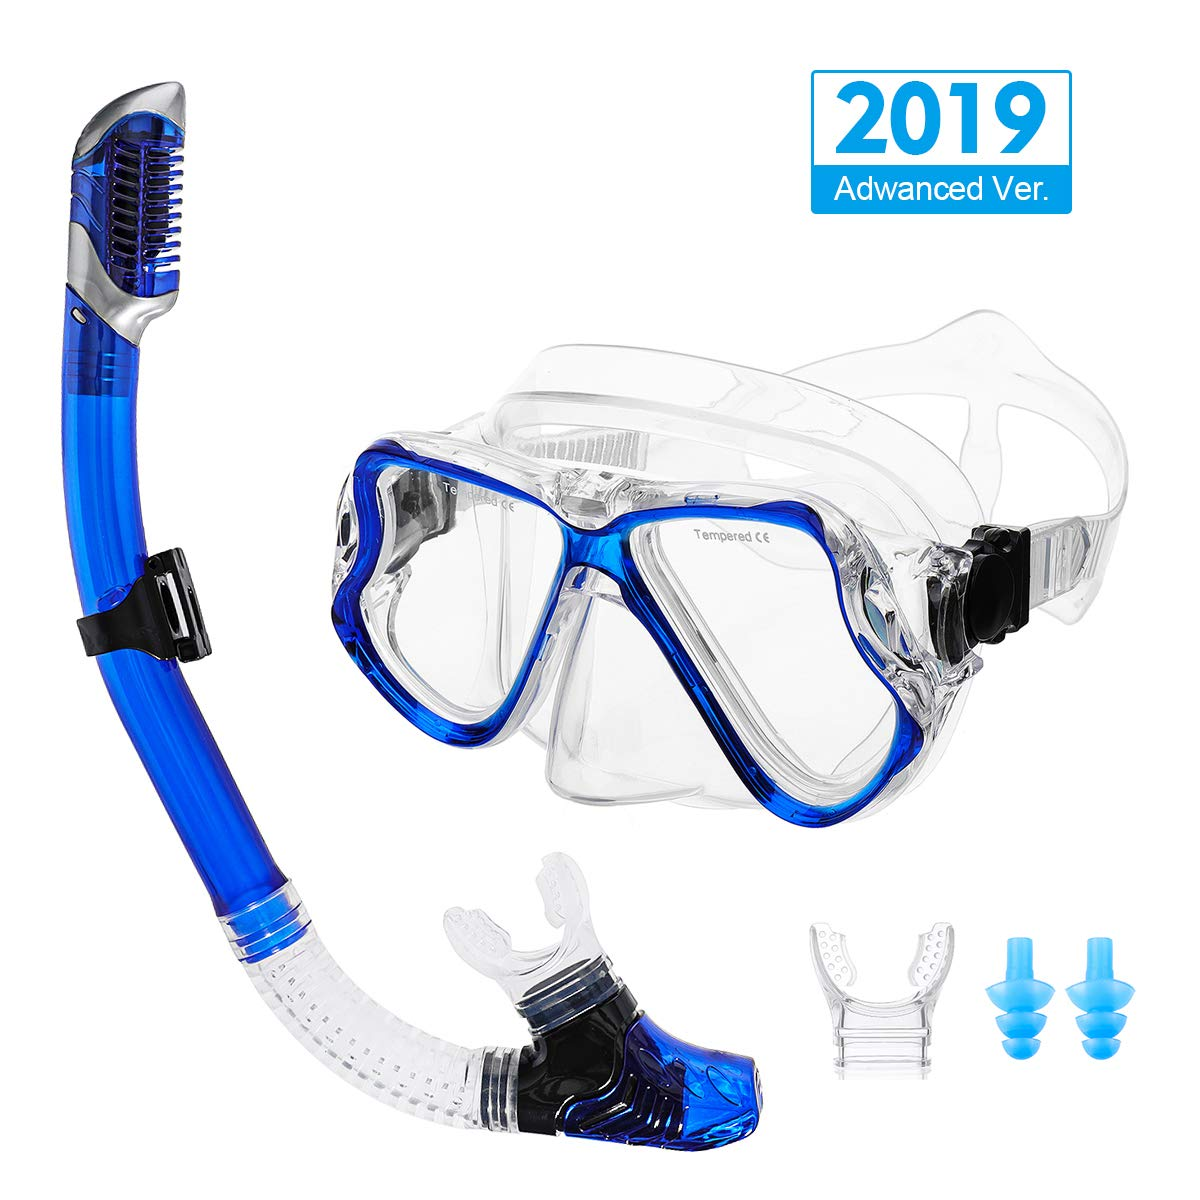 OUTERDO Snorkeling Set for Adults, Snorkel Mask with Ventilation Pipe Easy Breath, Wide View Diving Mask Anti Fog Anti Leak, Professional Snorkeling Gear for Snorkeling/Diving/Swimming(Blue) by OUTERDO